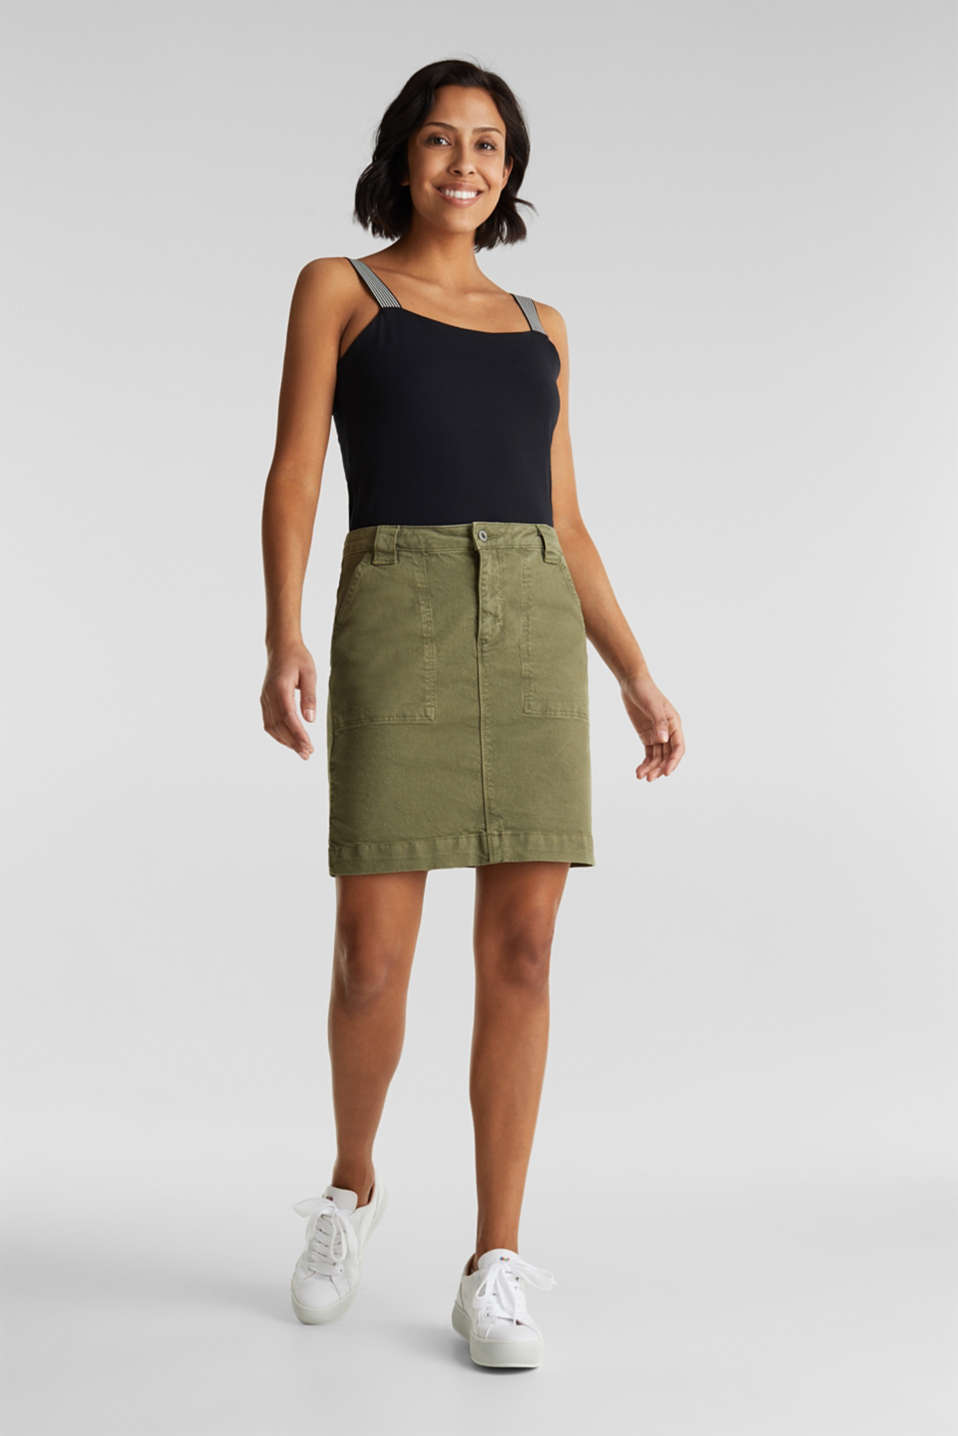 Denim skirt with pockets, KHAKI GREEN, detail image number 1